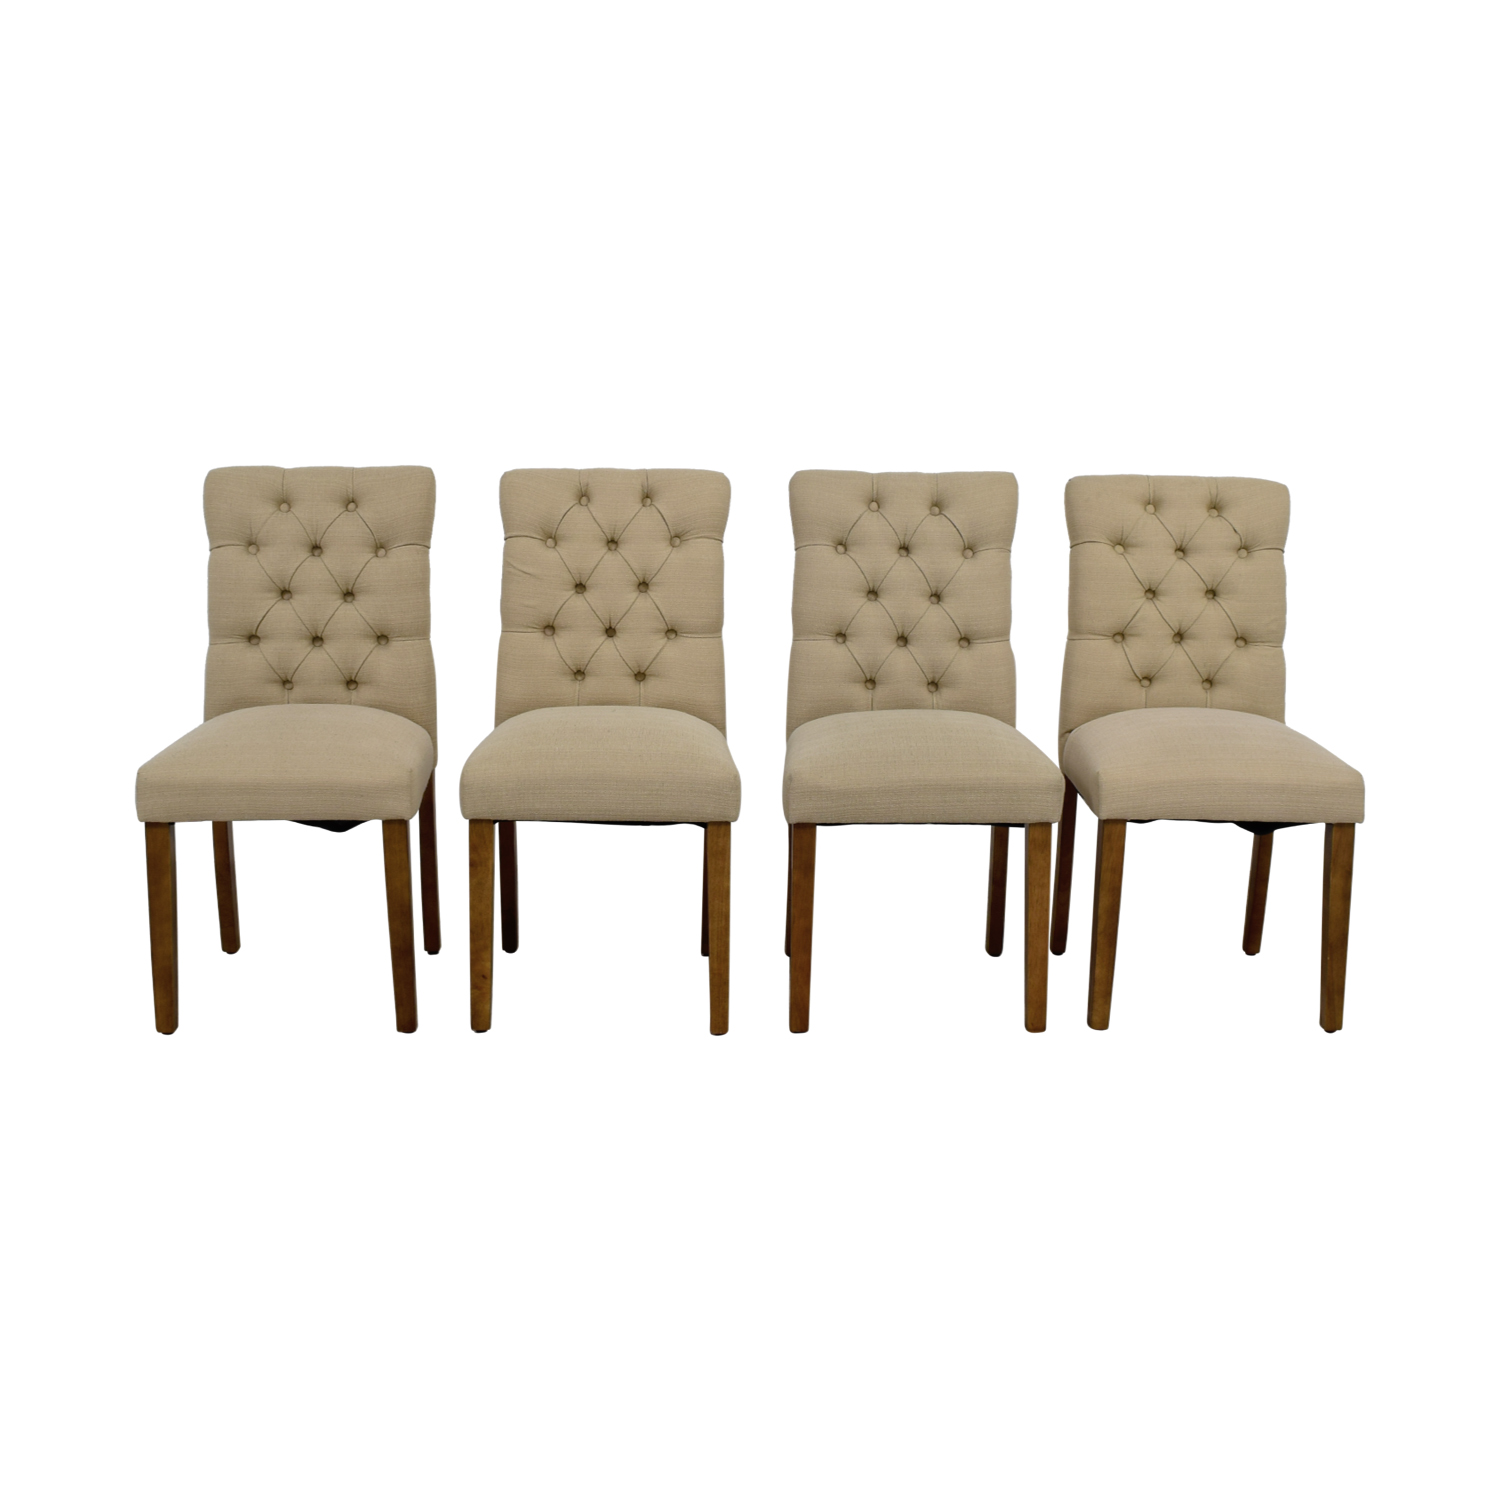 67 Off Target Target Brookline Threshold Tan Tufted Dining Chairs Chairs